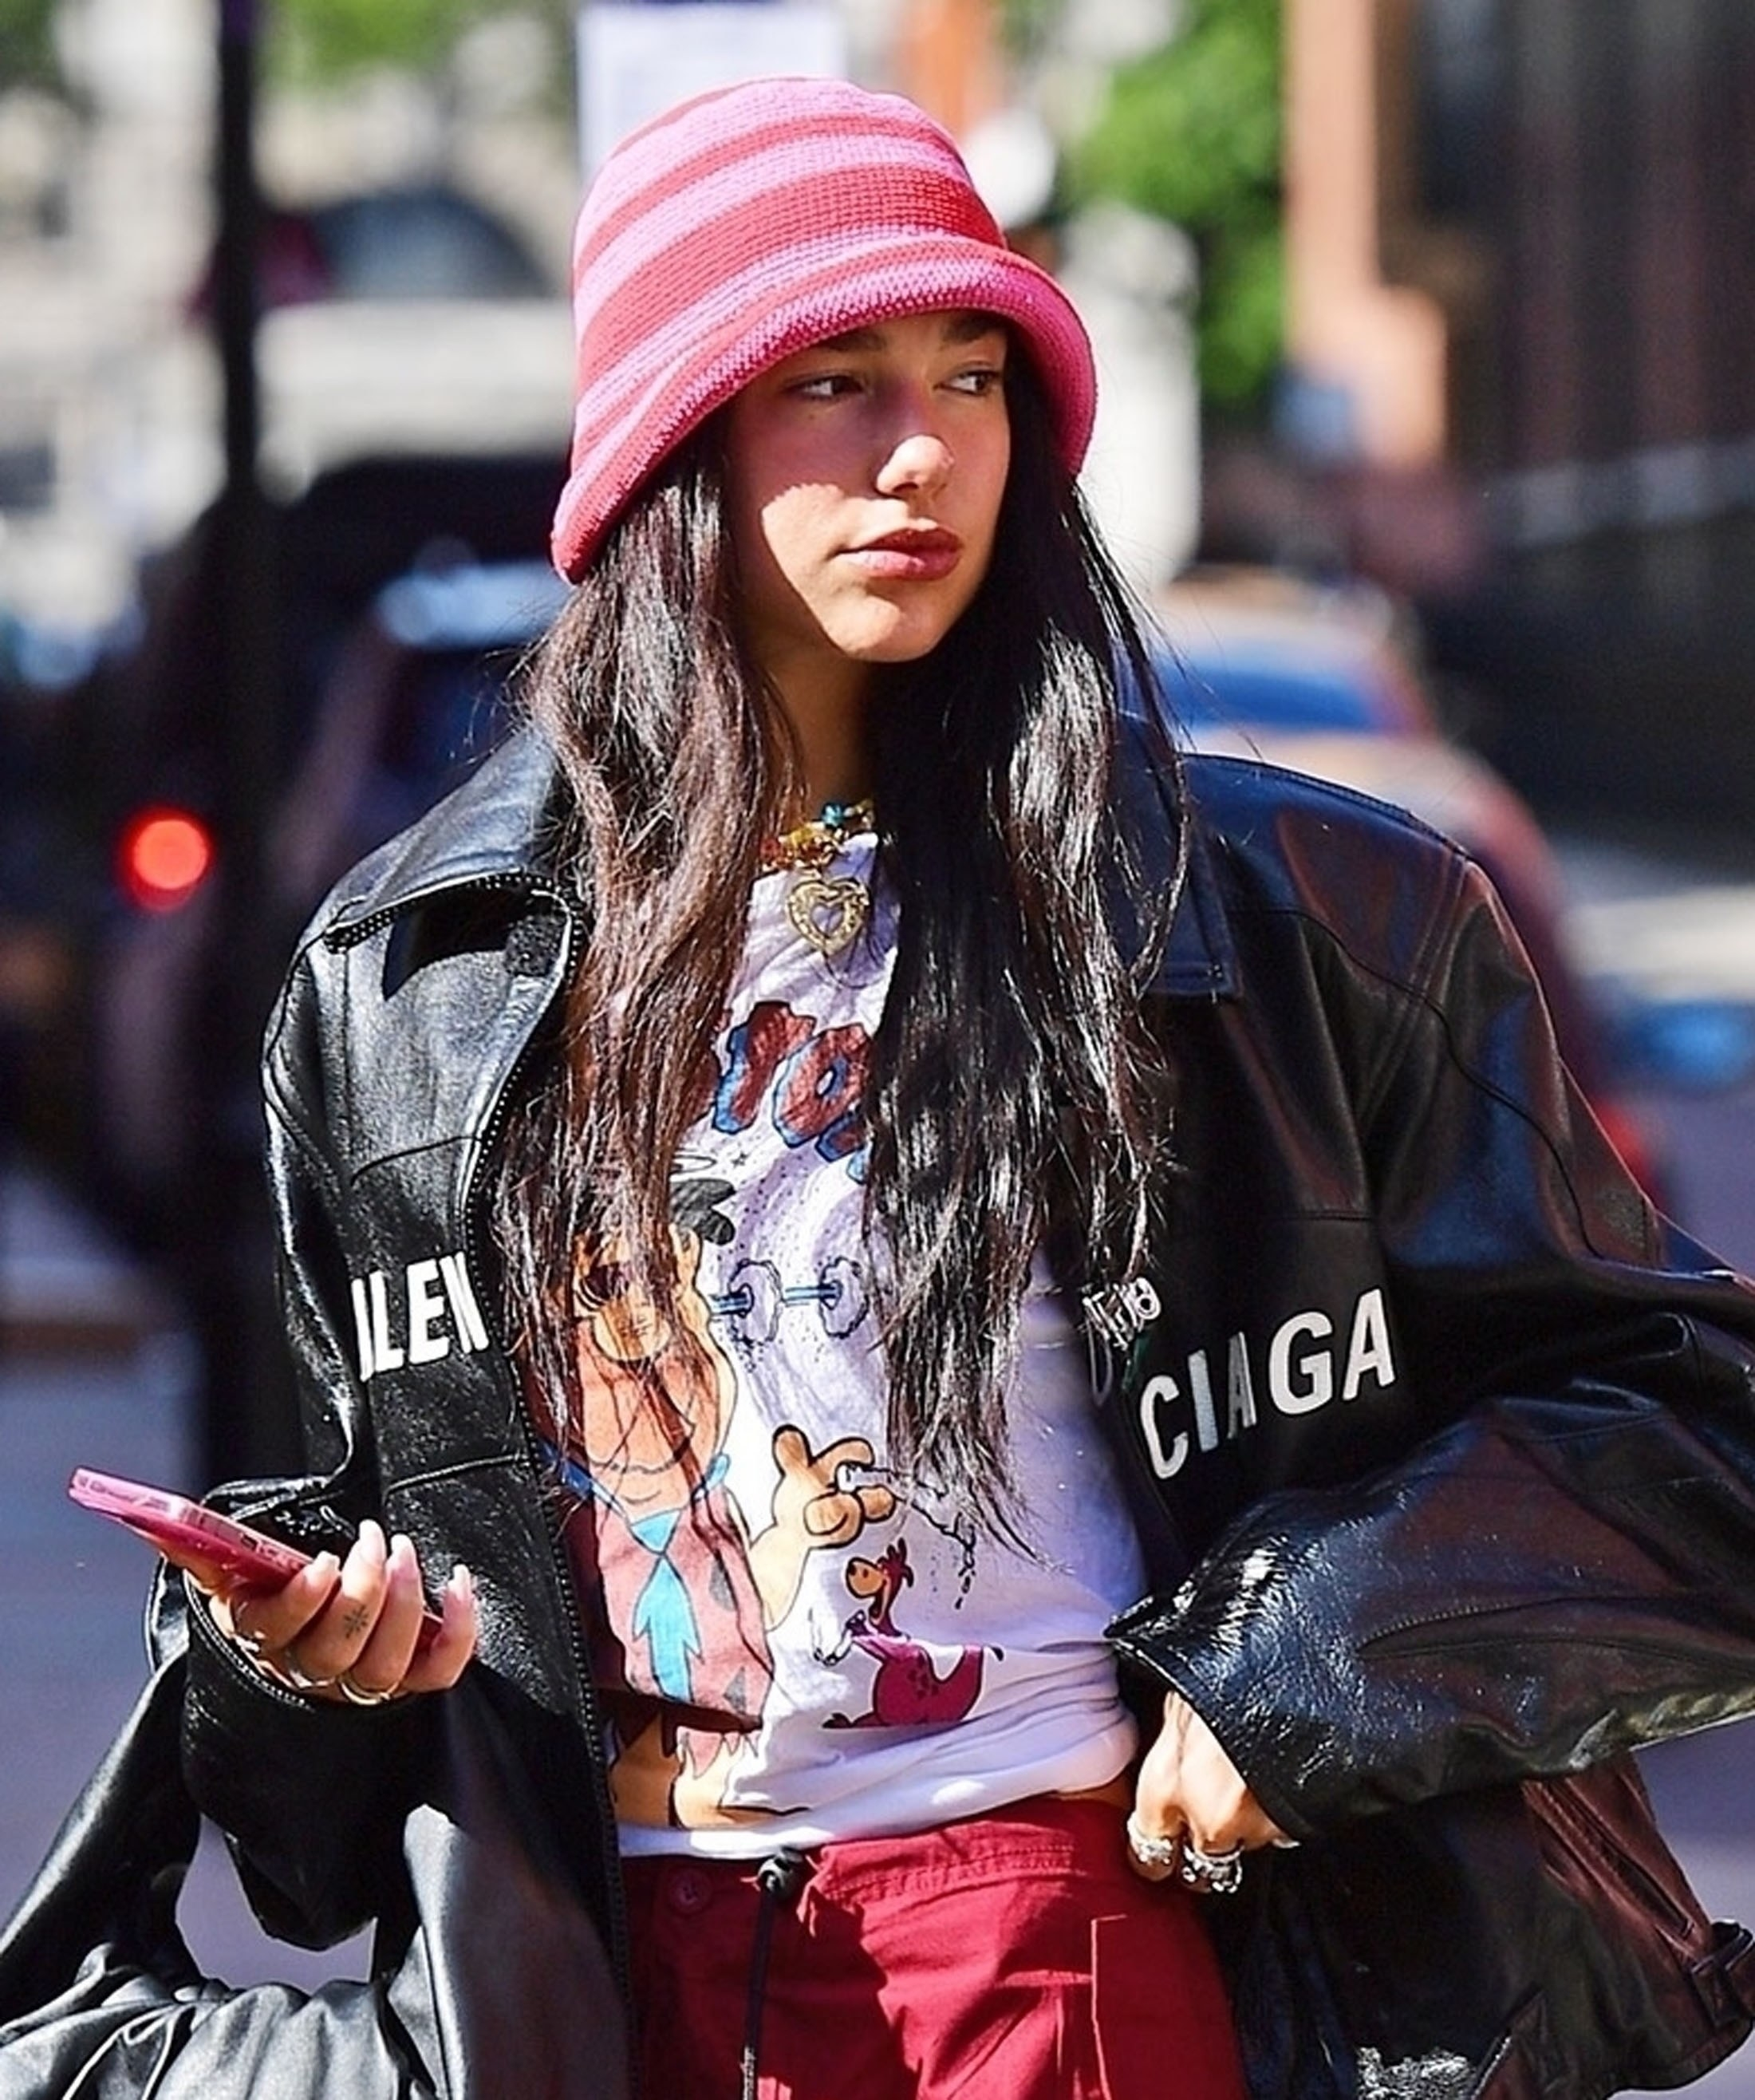 Dua looking to the side while wearing a black jacket and cartoon T-shirt and holding a cellphont